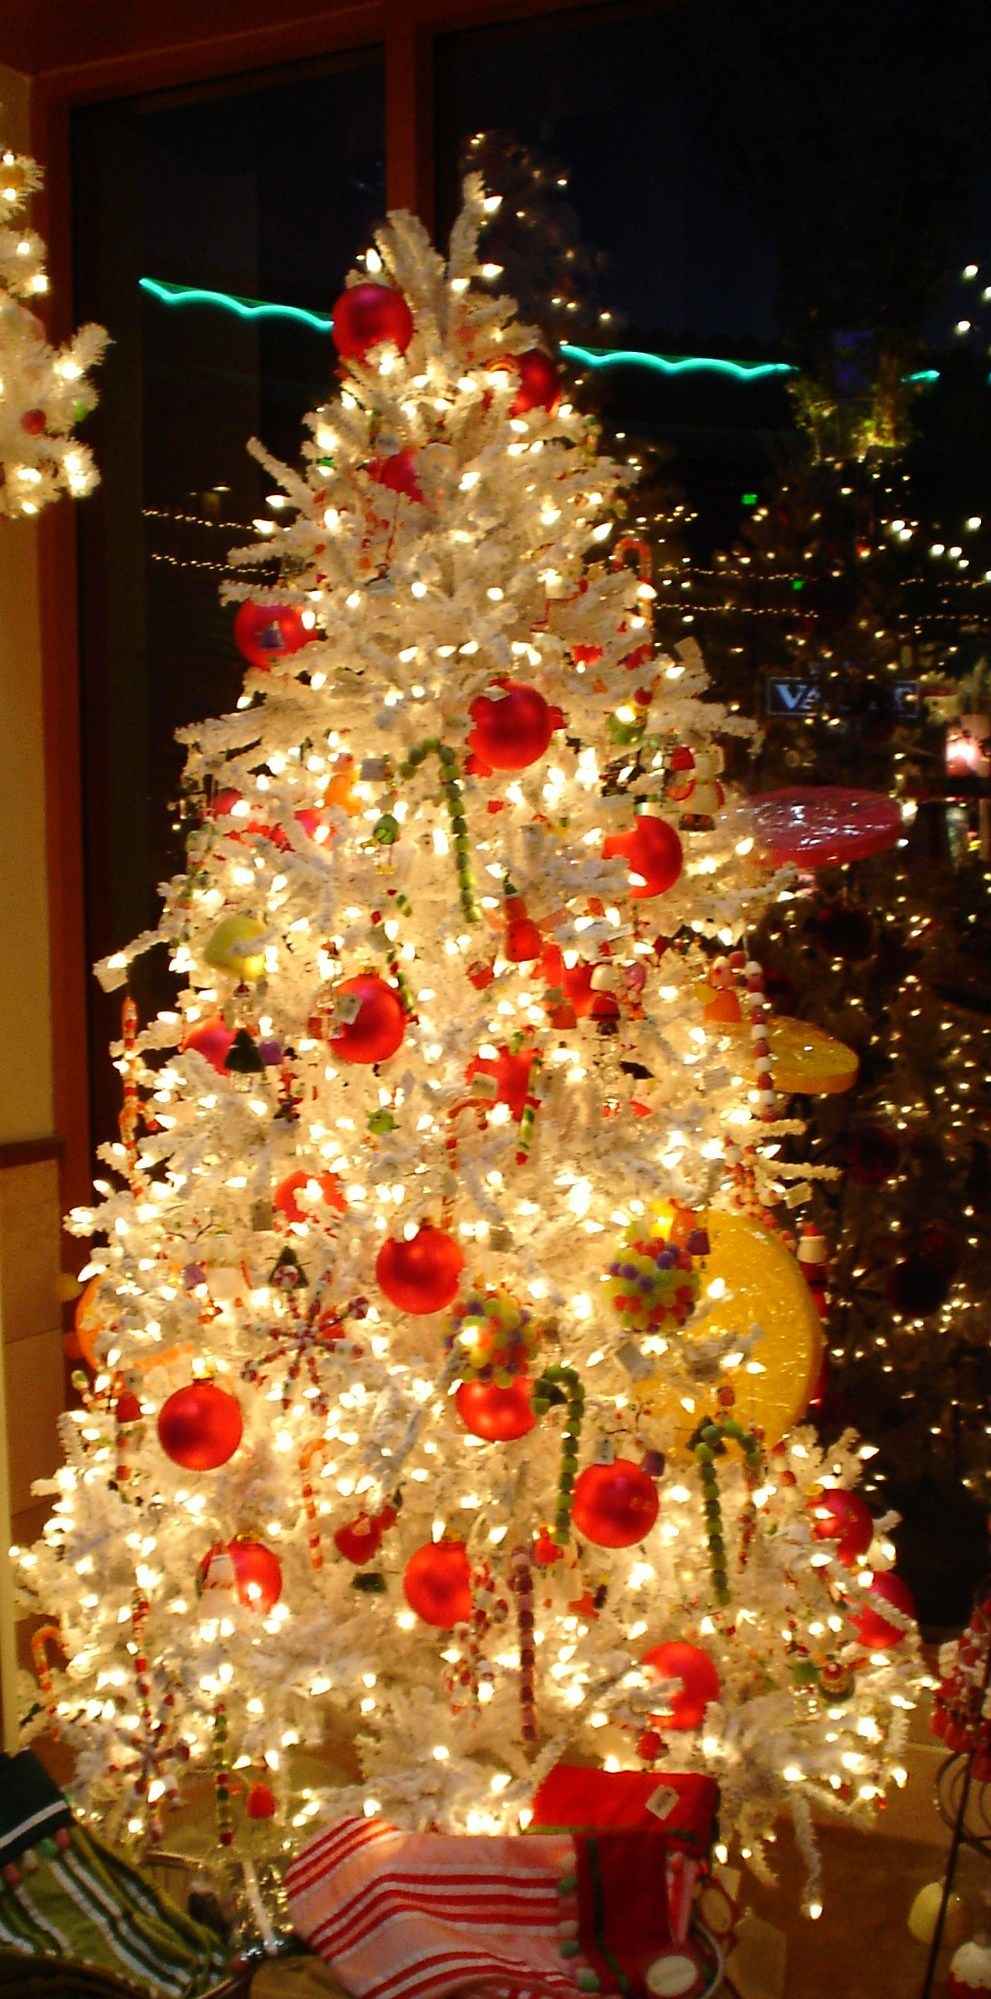 Christmas Trees - Christmas Photo (2833383) - Fanpop